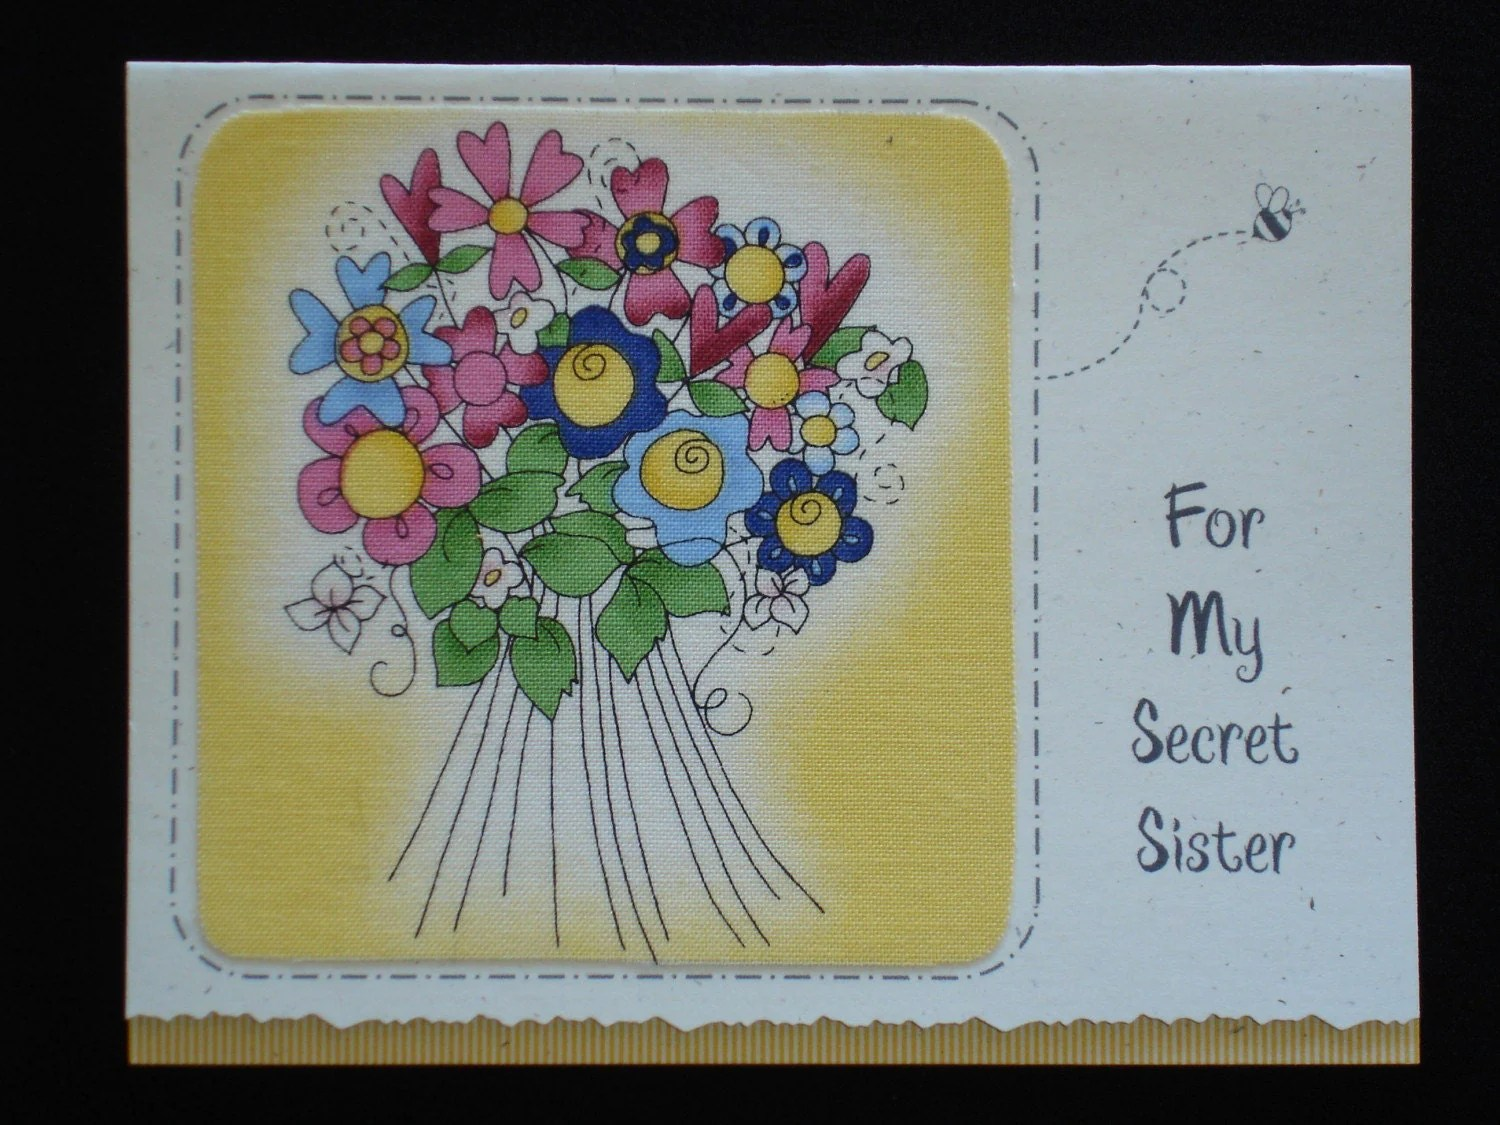 Secret Sister Birthday Card By Lynelle Fb45 Designed With